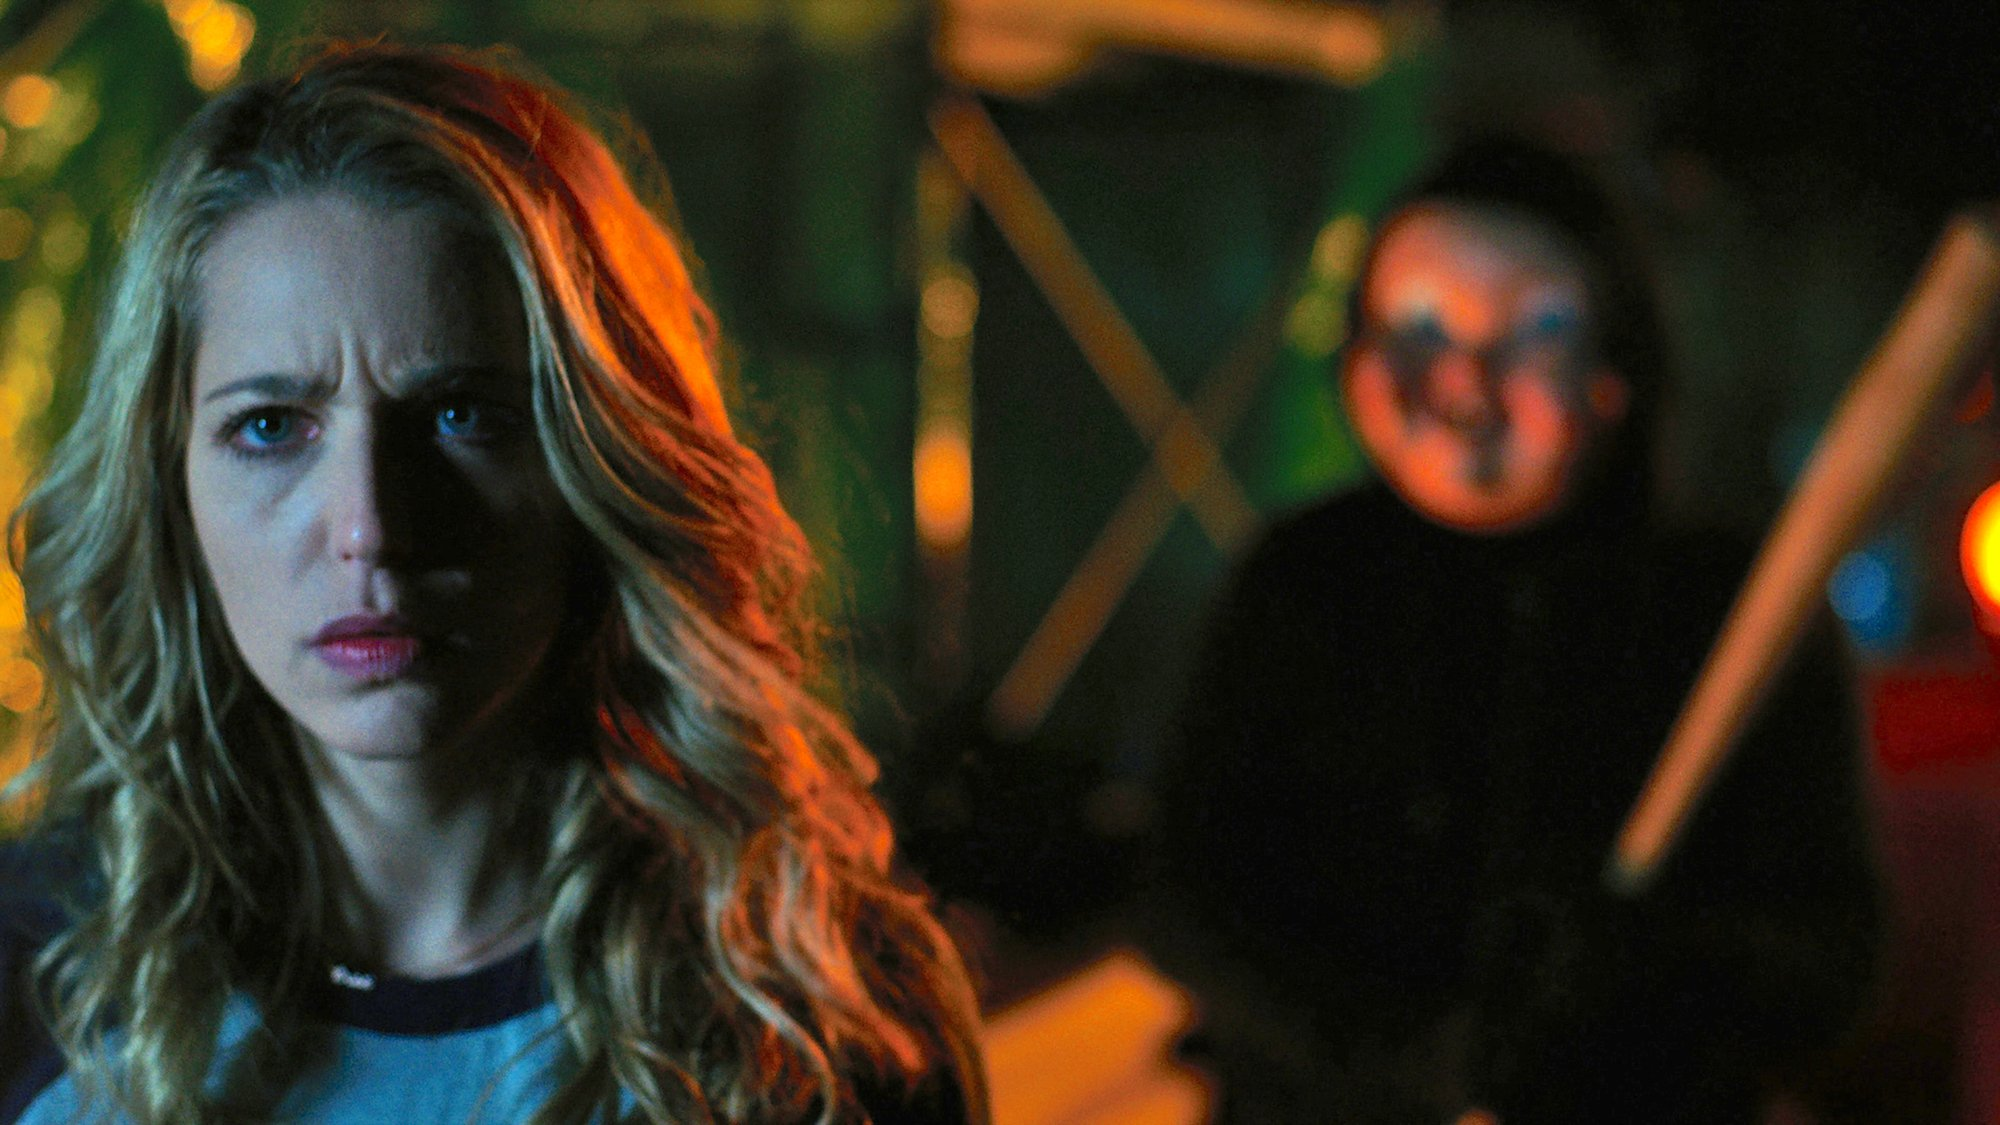 happy death day - Changing the Face of Horror - An International Women's Day Special Report